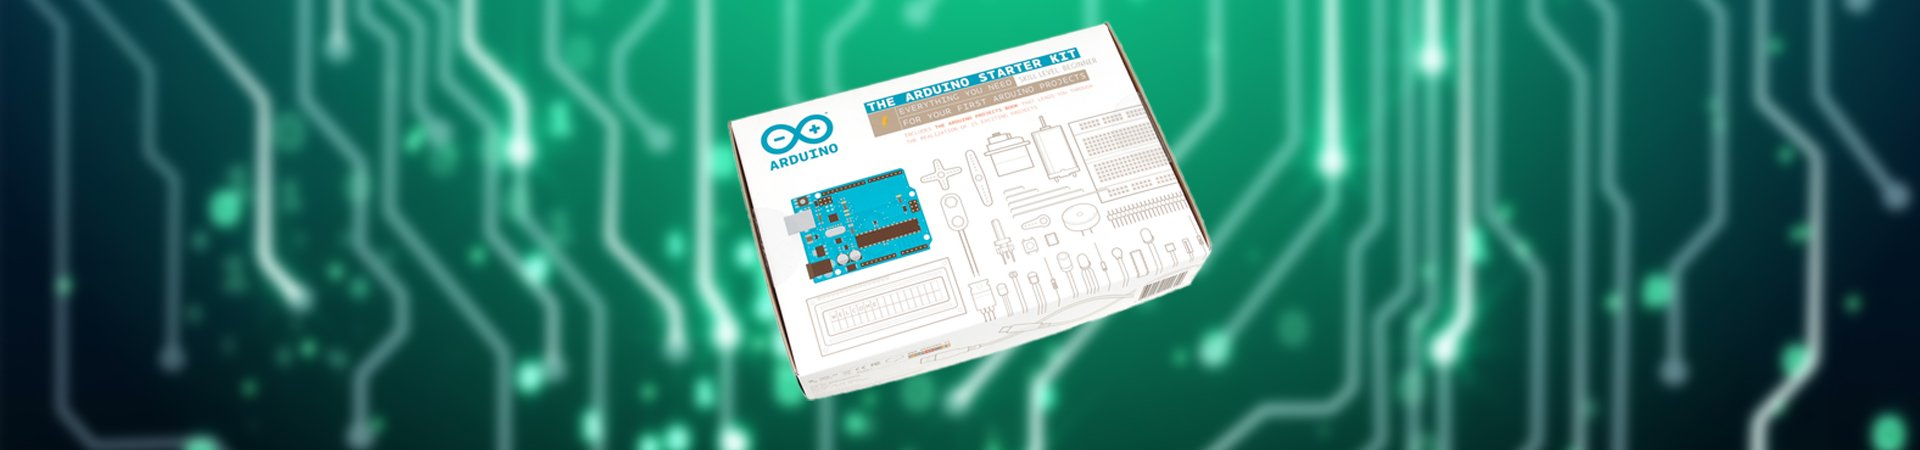 Arduino starter kit cl